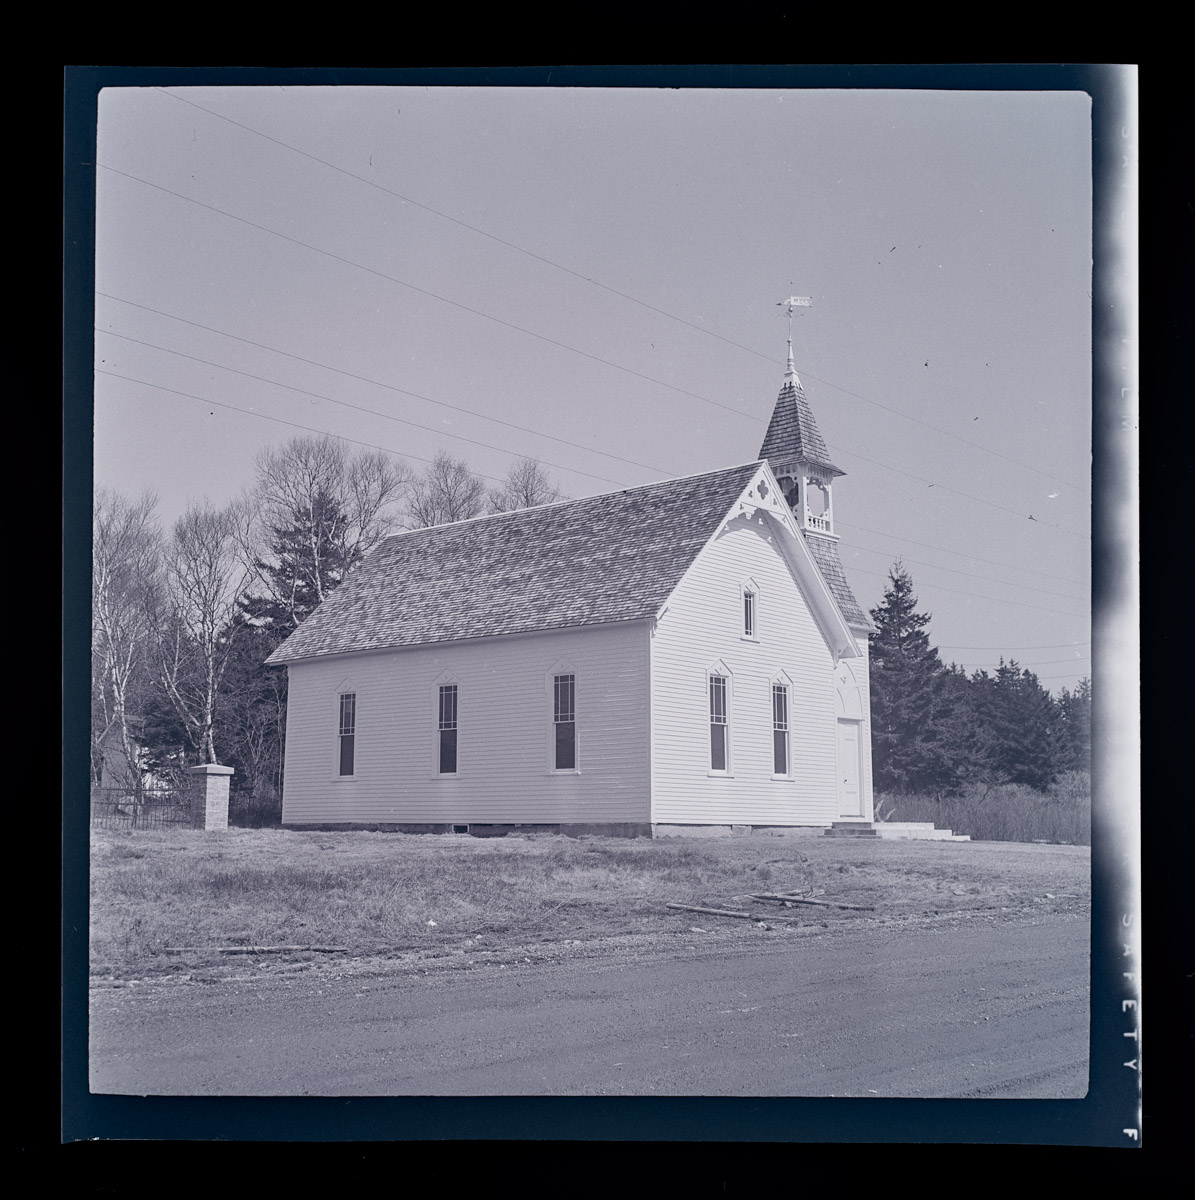 Swans Island Methodist Church Negative, 1960s